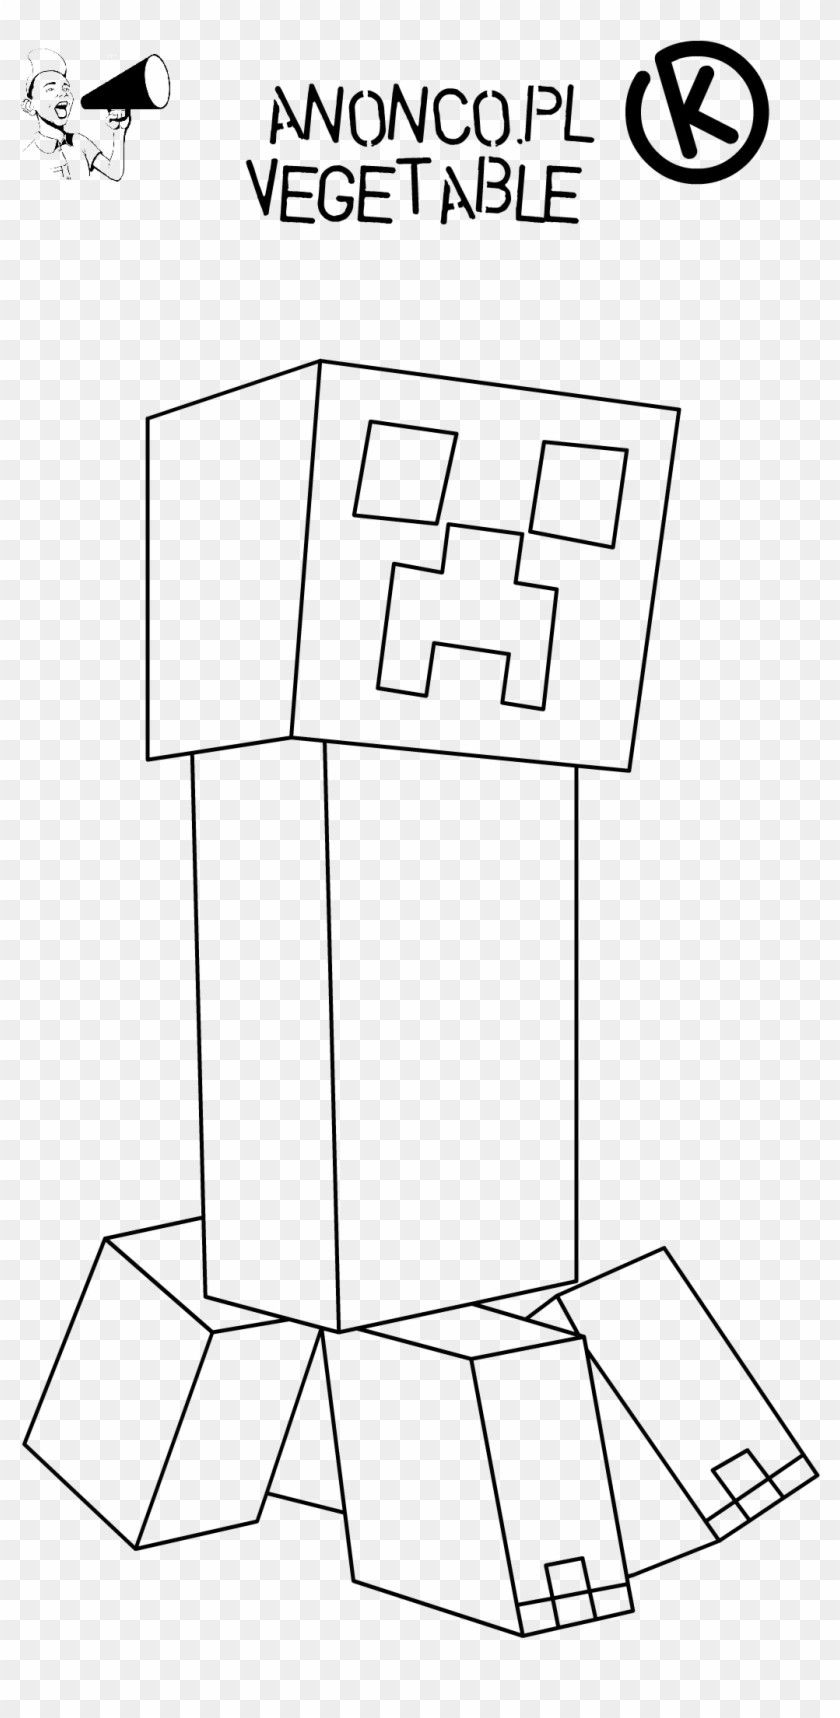 Creeper Minecraft Coloring Page Youngandtae Com Minecraft Coloring Pages Owl Coloring Pages Creeper Minecraft